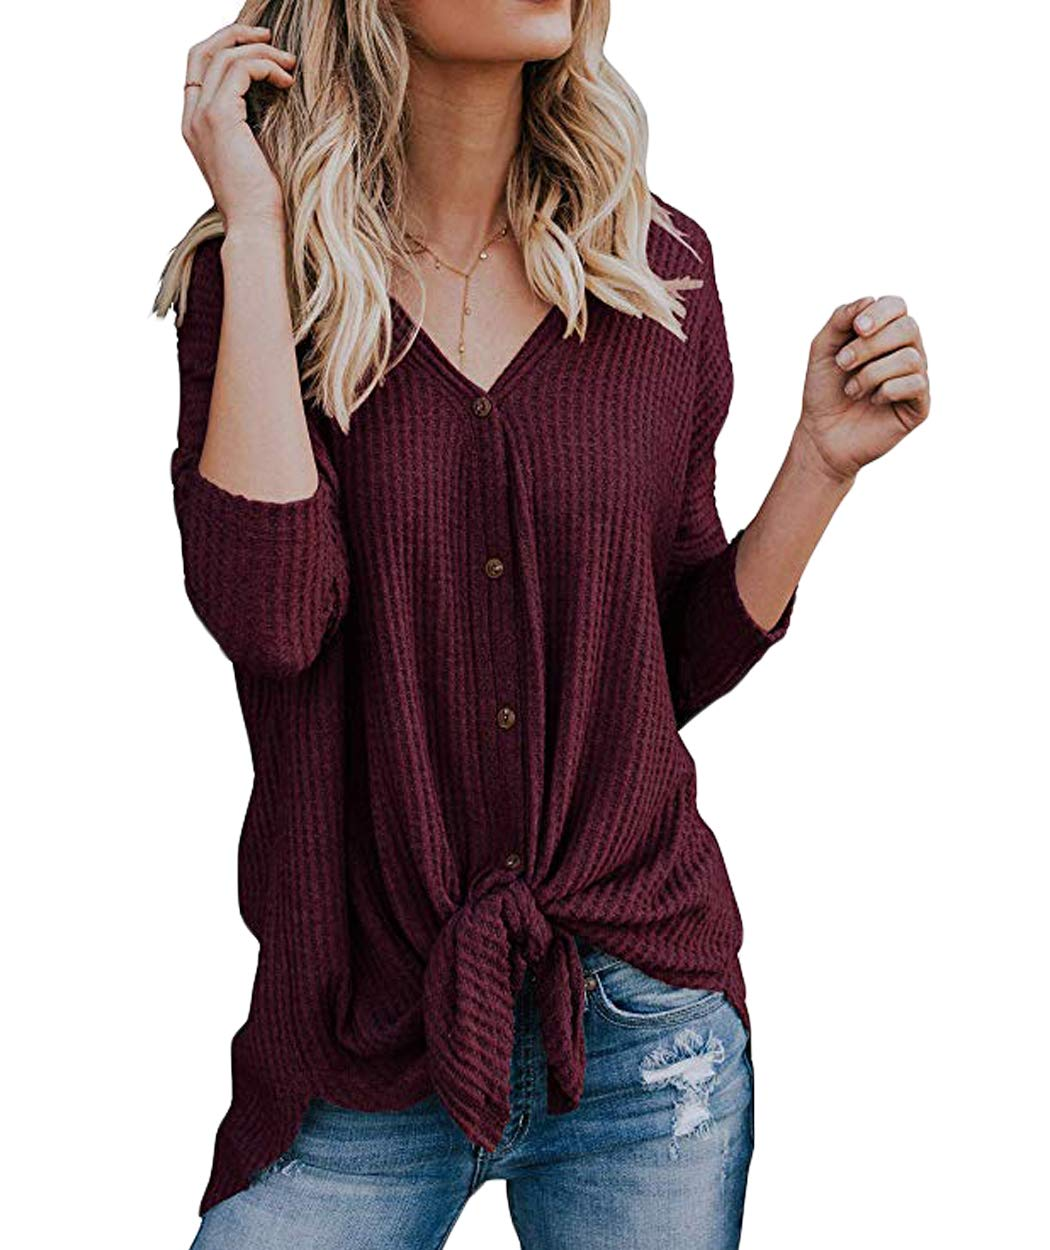 Eanklosco Tie Knot Tops Womens Waffle Knit V Neck Blouse Button Down Long Sleeve Henley Shirt(Dark Red, M)